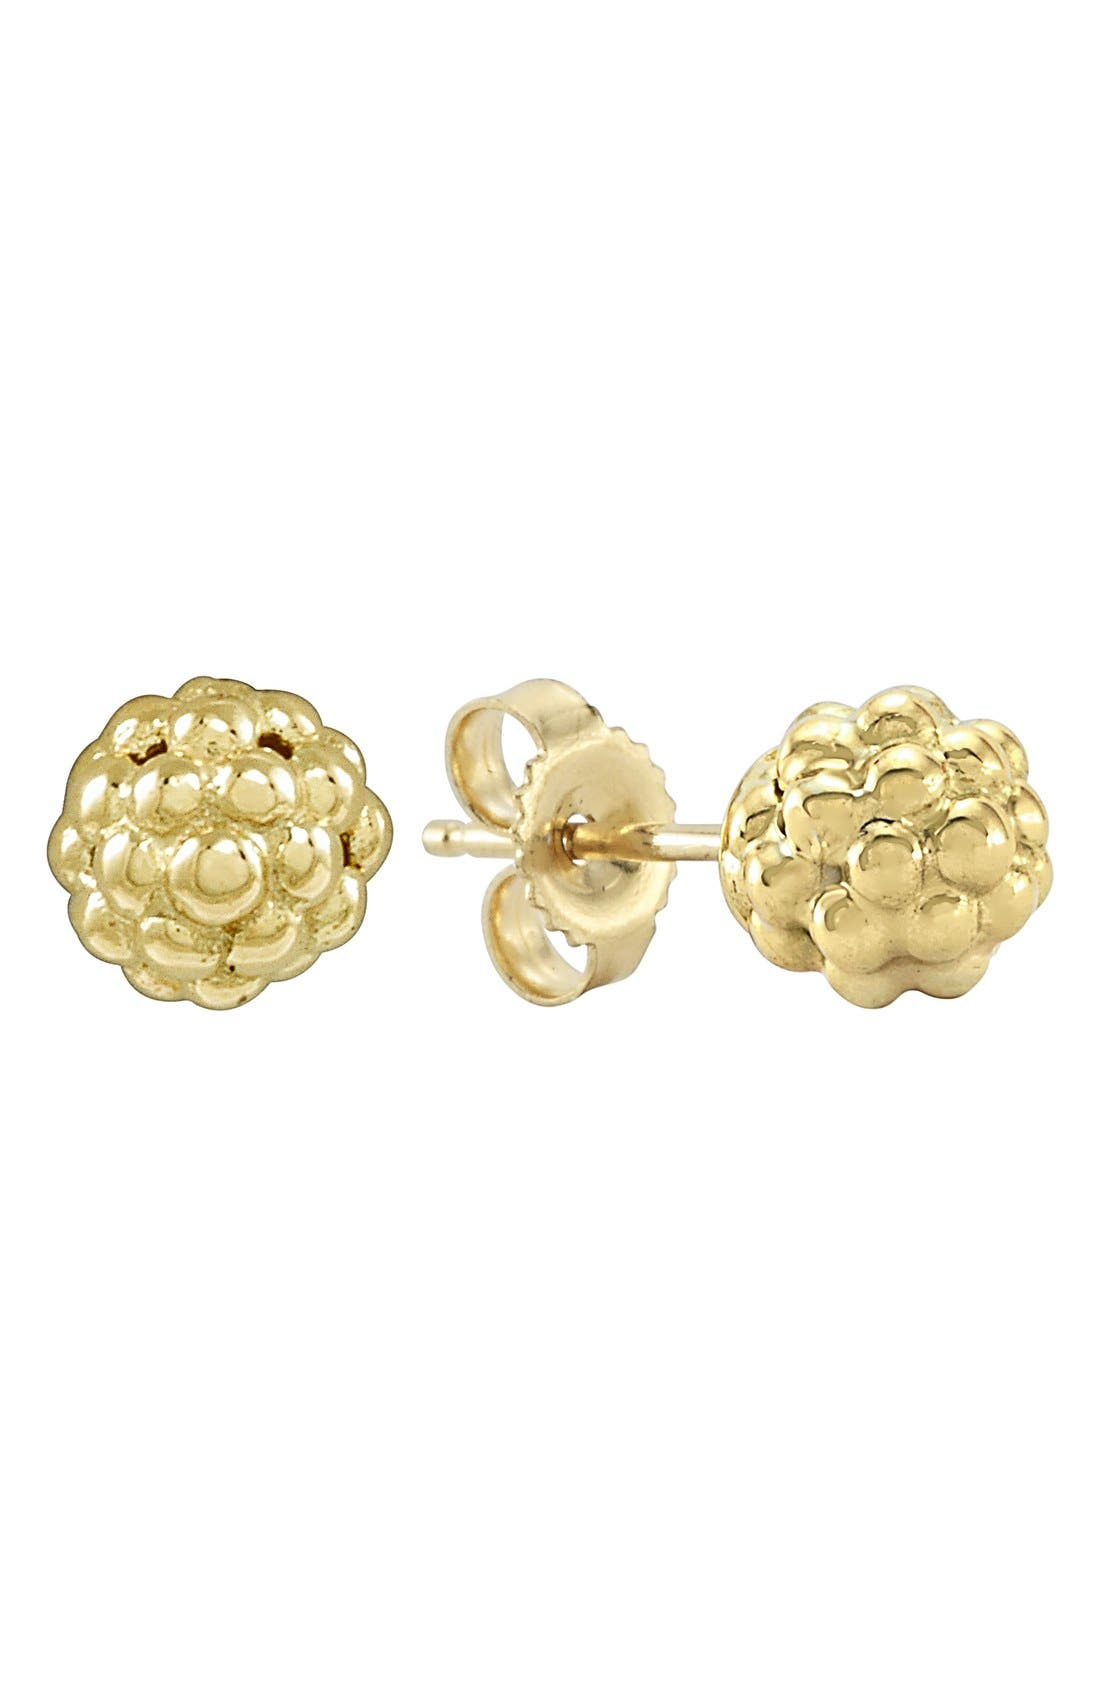 'Caviar Icon' Stud Earrings,                         Main,                         color, Gold